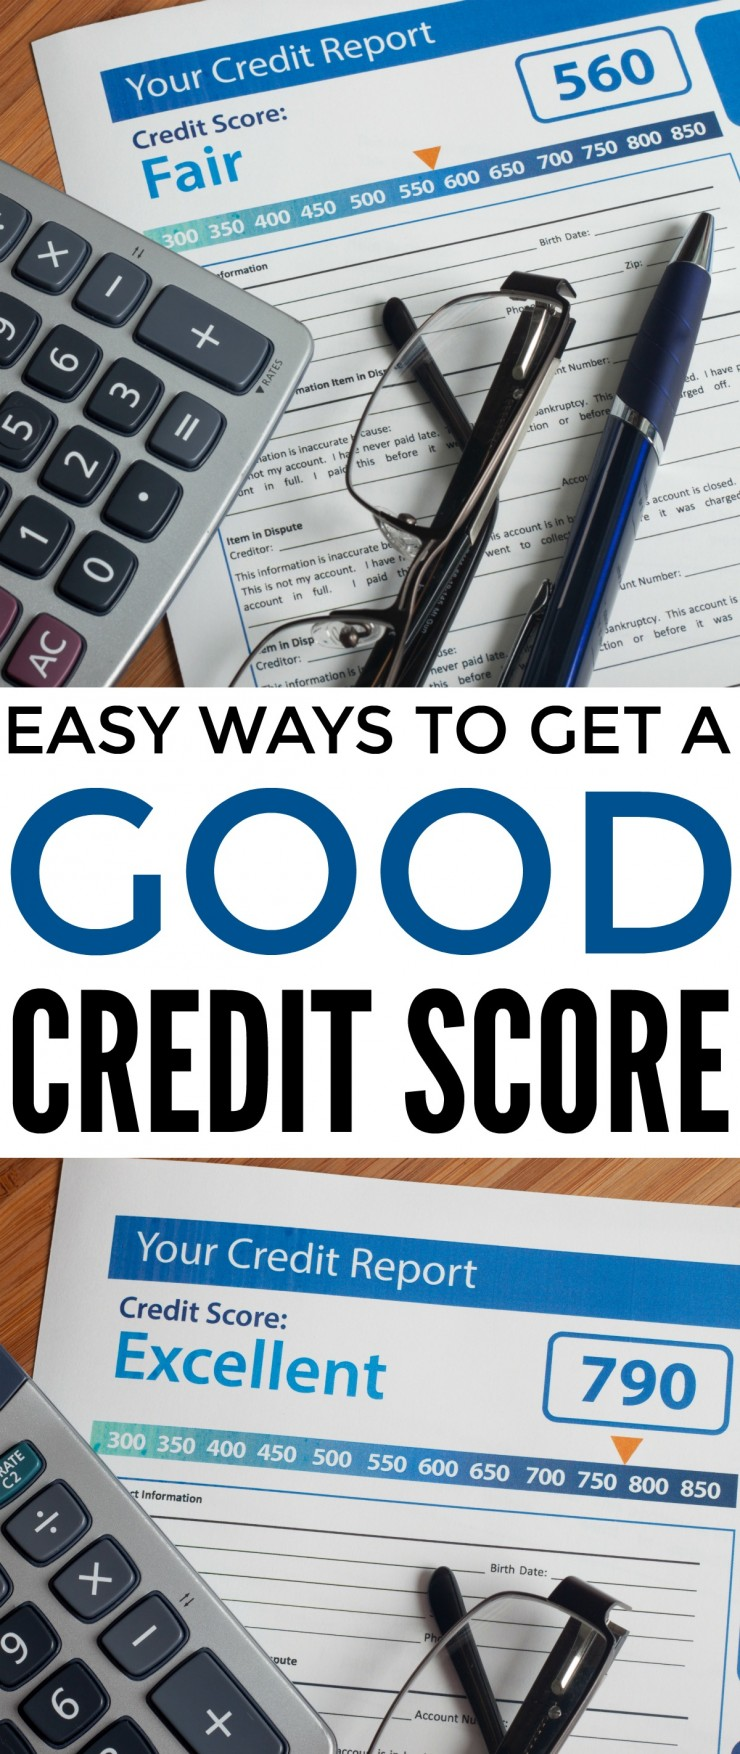 There are many ways to raise your credit score and therefore improve your chances of being approved when you apply for credit. Check out these easy ways to get a good credit score.